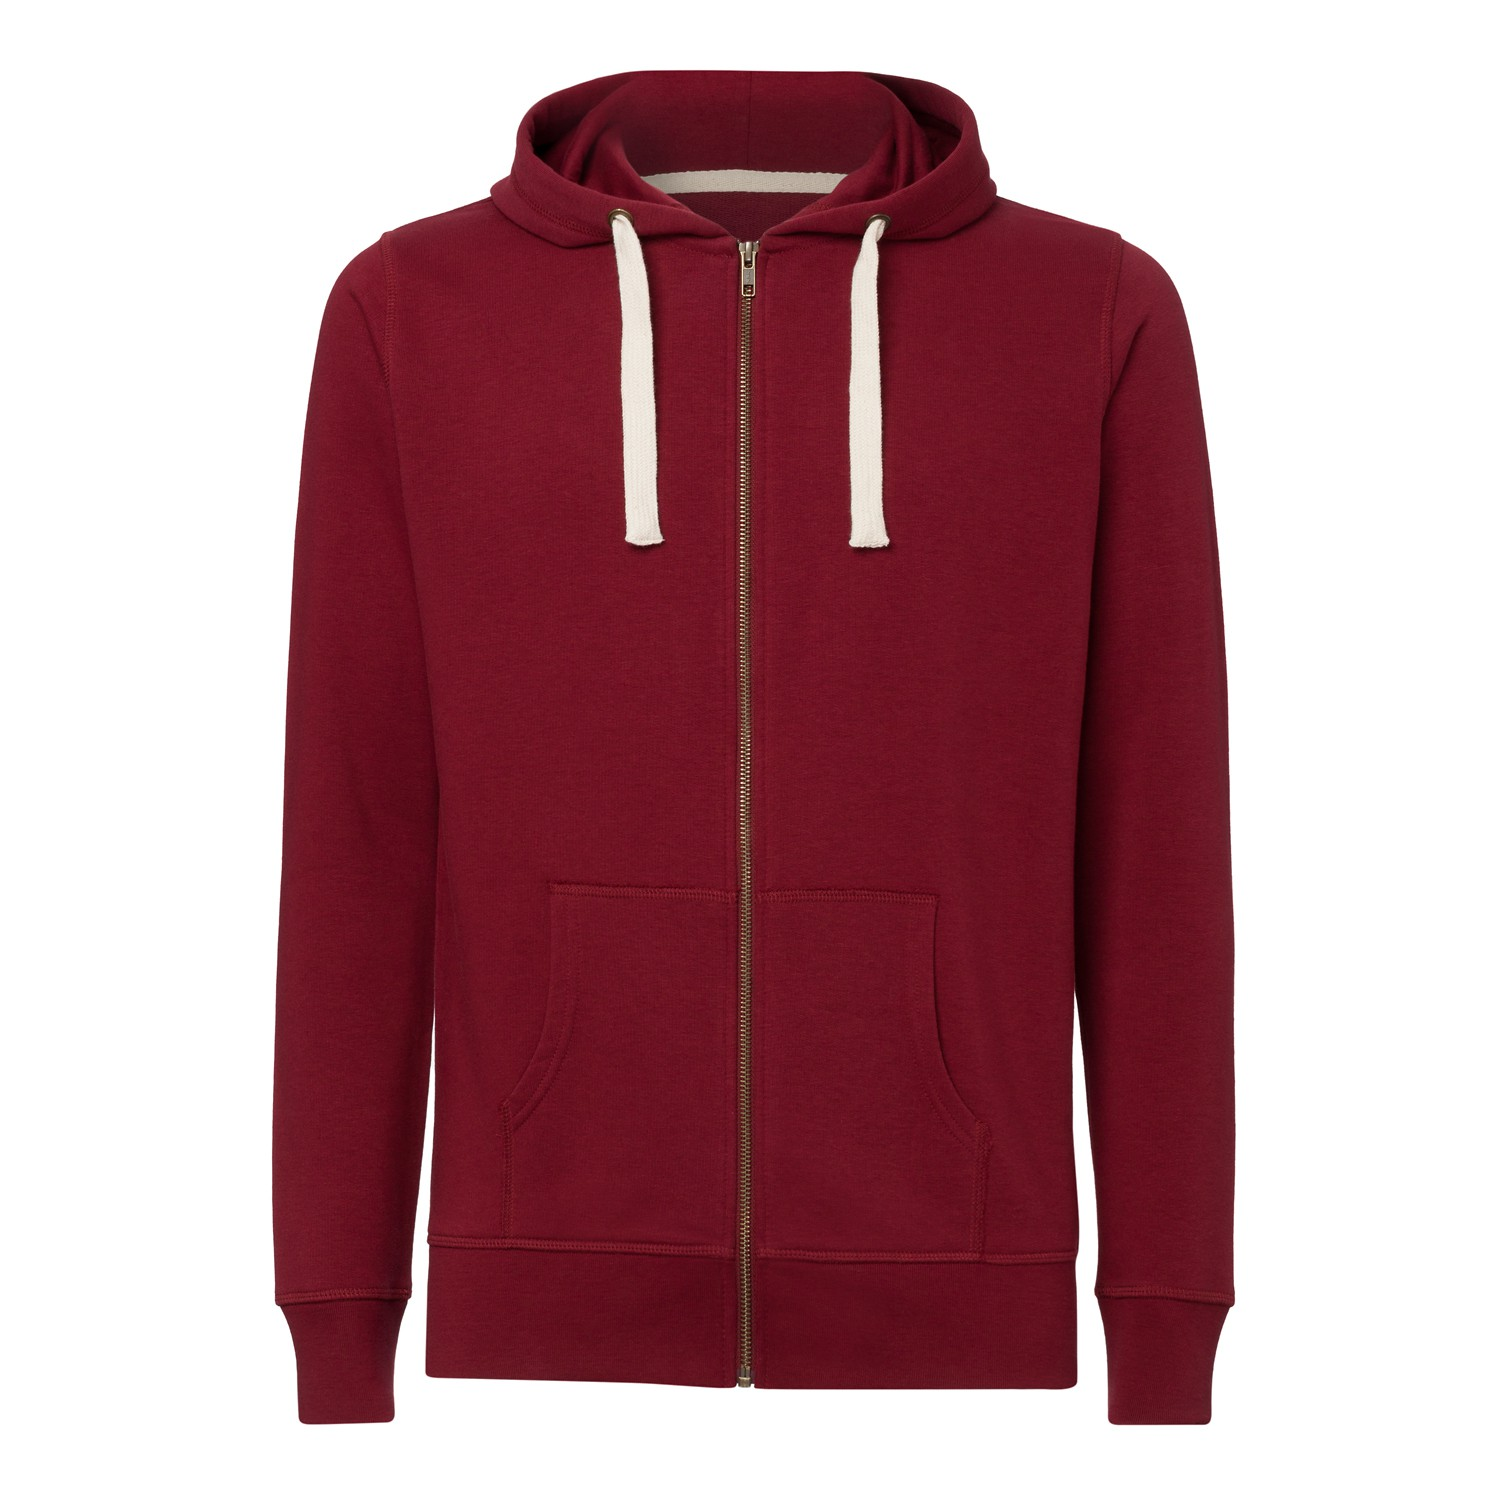 Man Hooded Sweater Burgundy Bio & Fair KO-OPS ThokkThokk ST Men ...